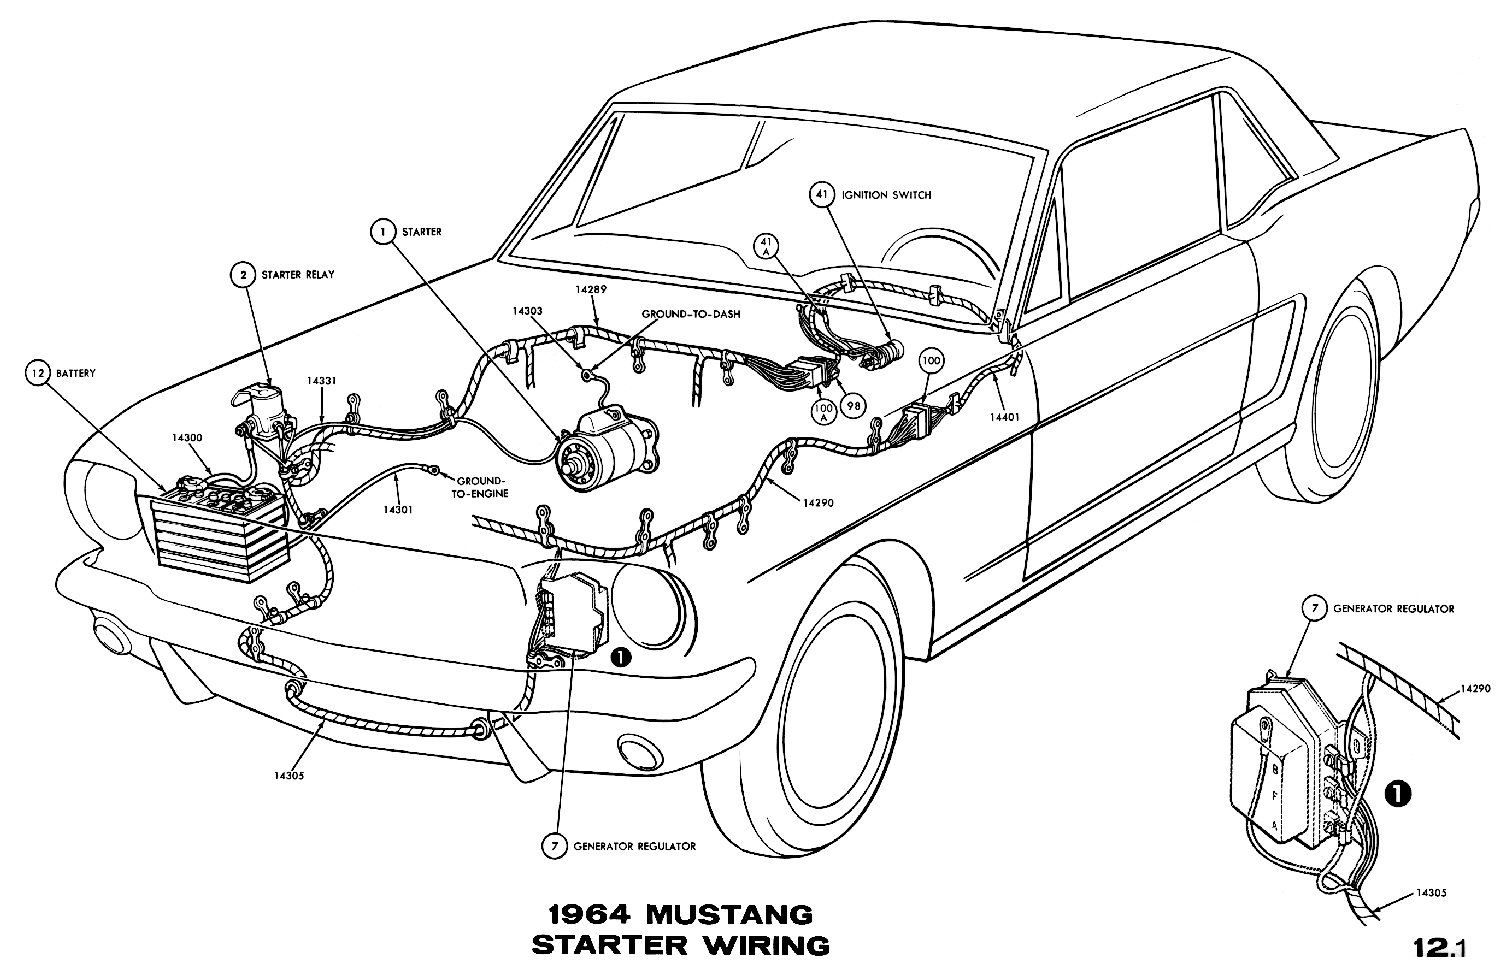 1964 12 Mustang Wiring Diagram Harness Schematics De Walt Air Compressor D55162 Diagrams Average Joe Restoration 1965 Alternator